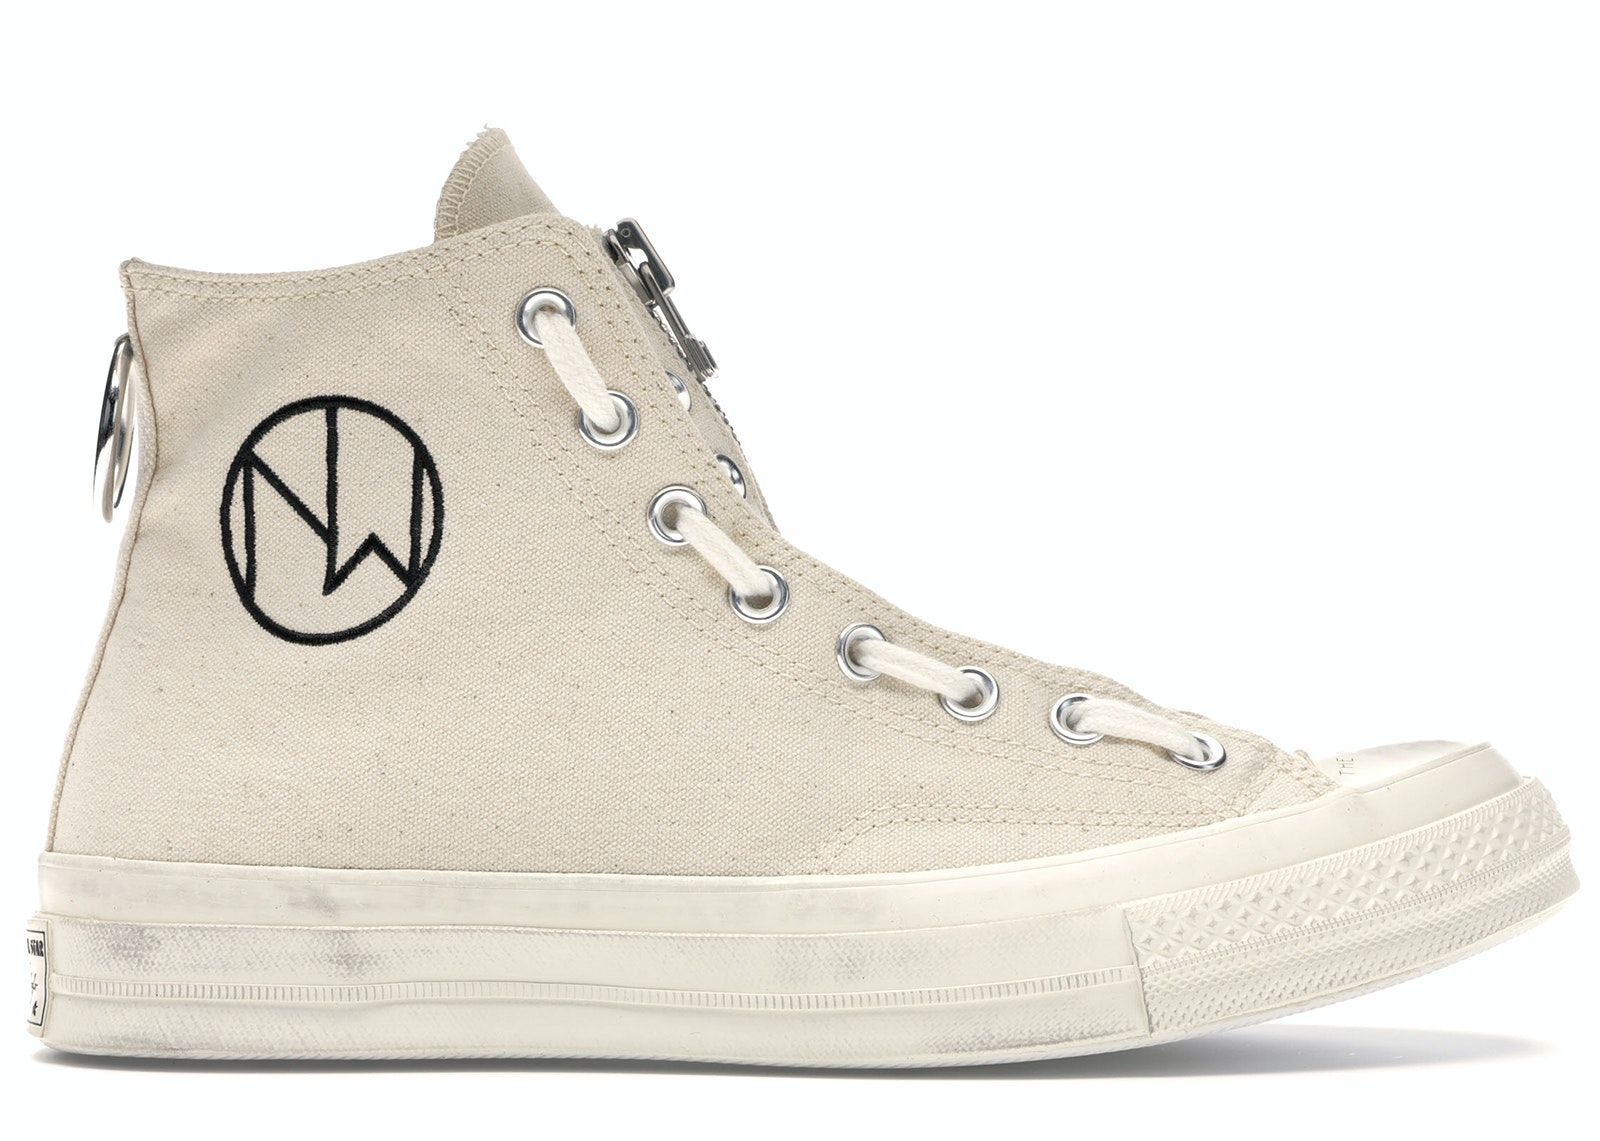 Converse Chuck Taylor All-Star 70s Hi Undercover New Warriors White